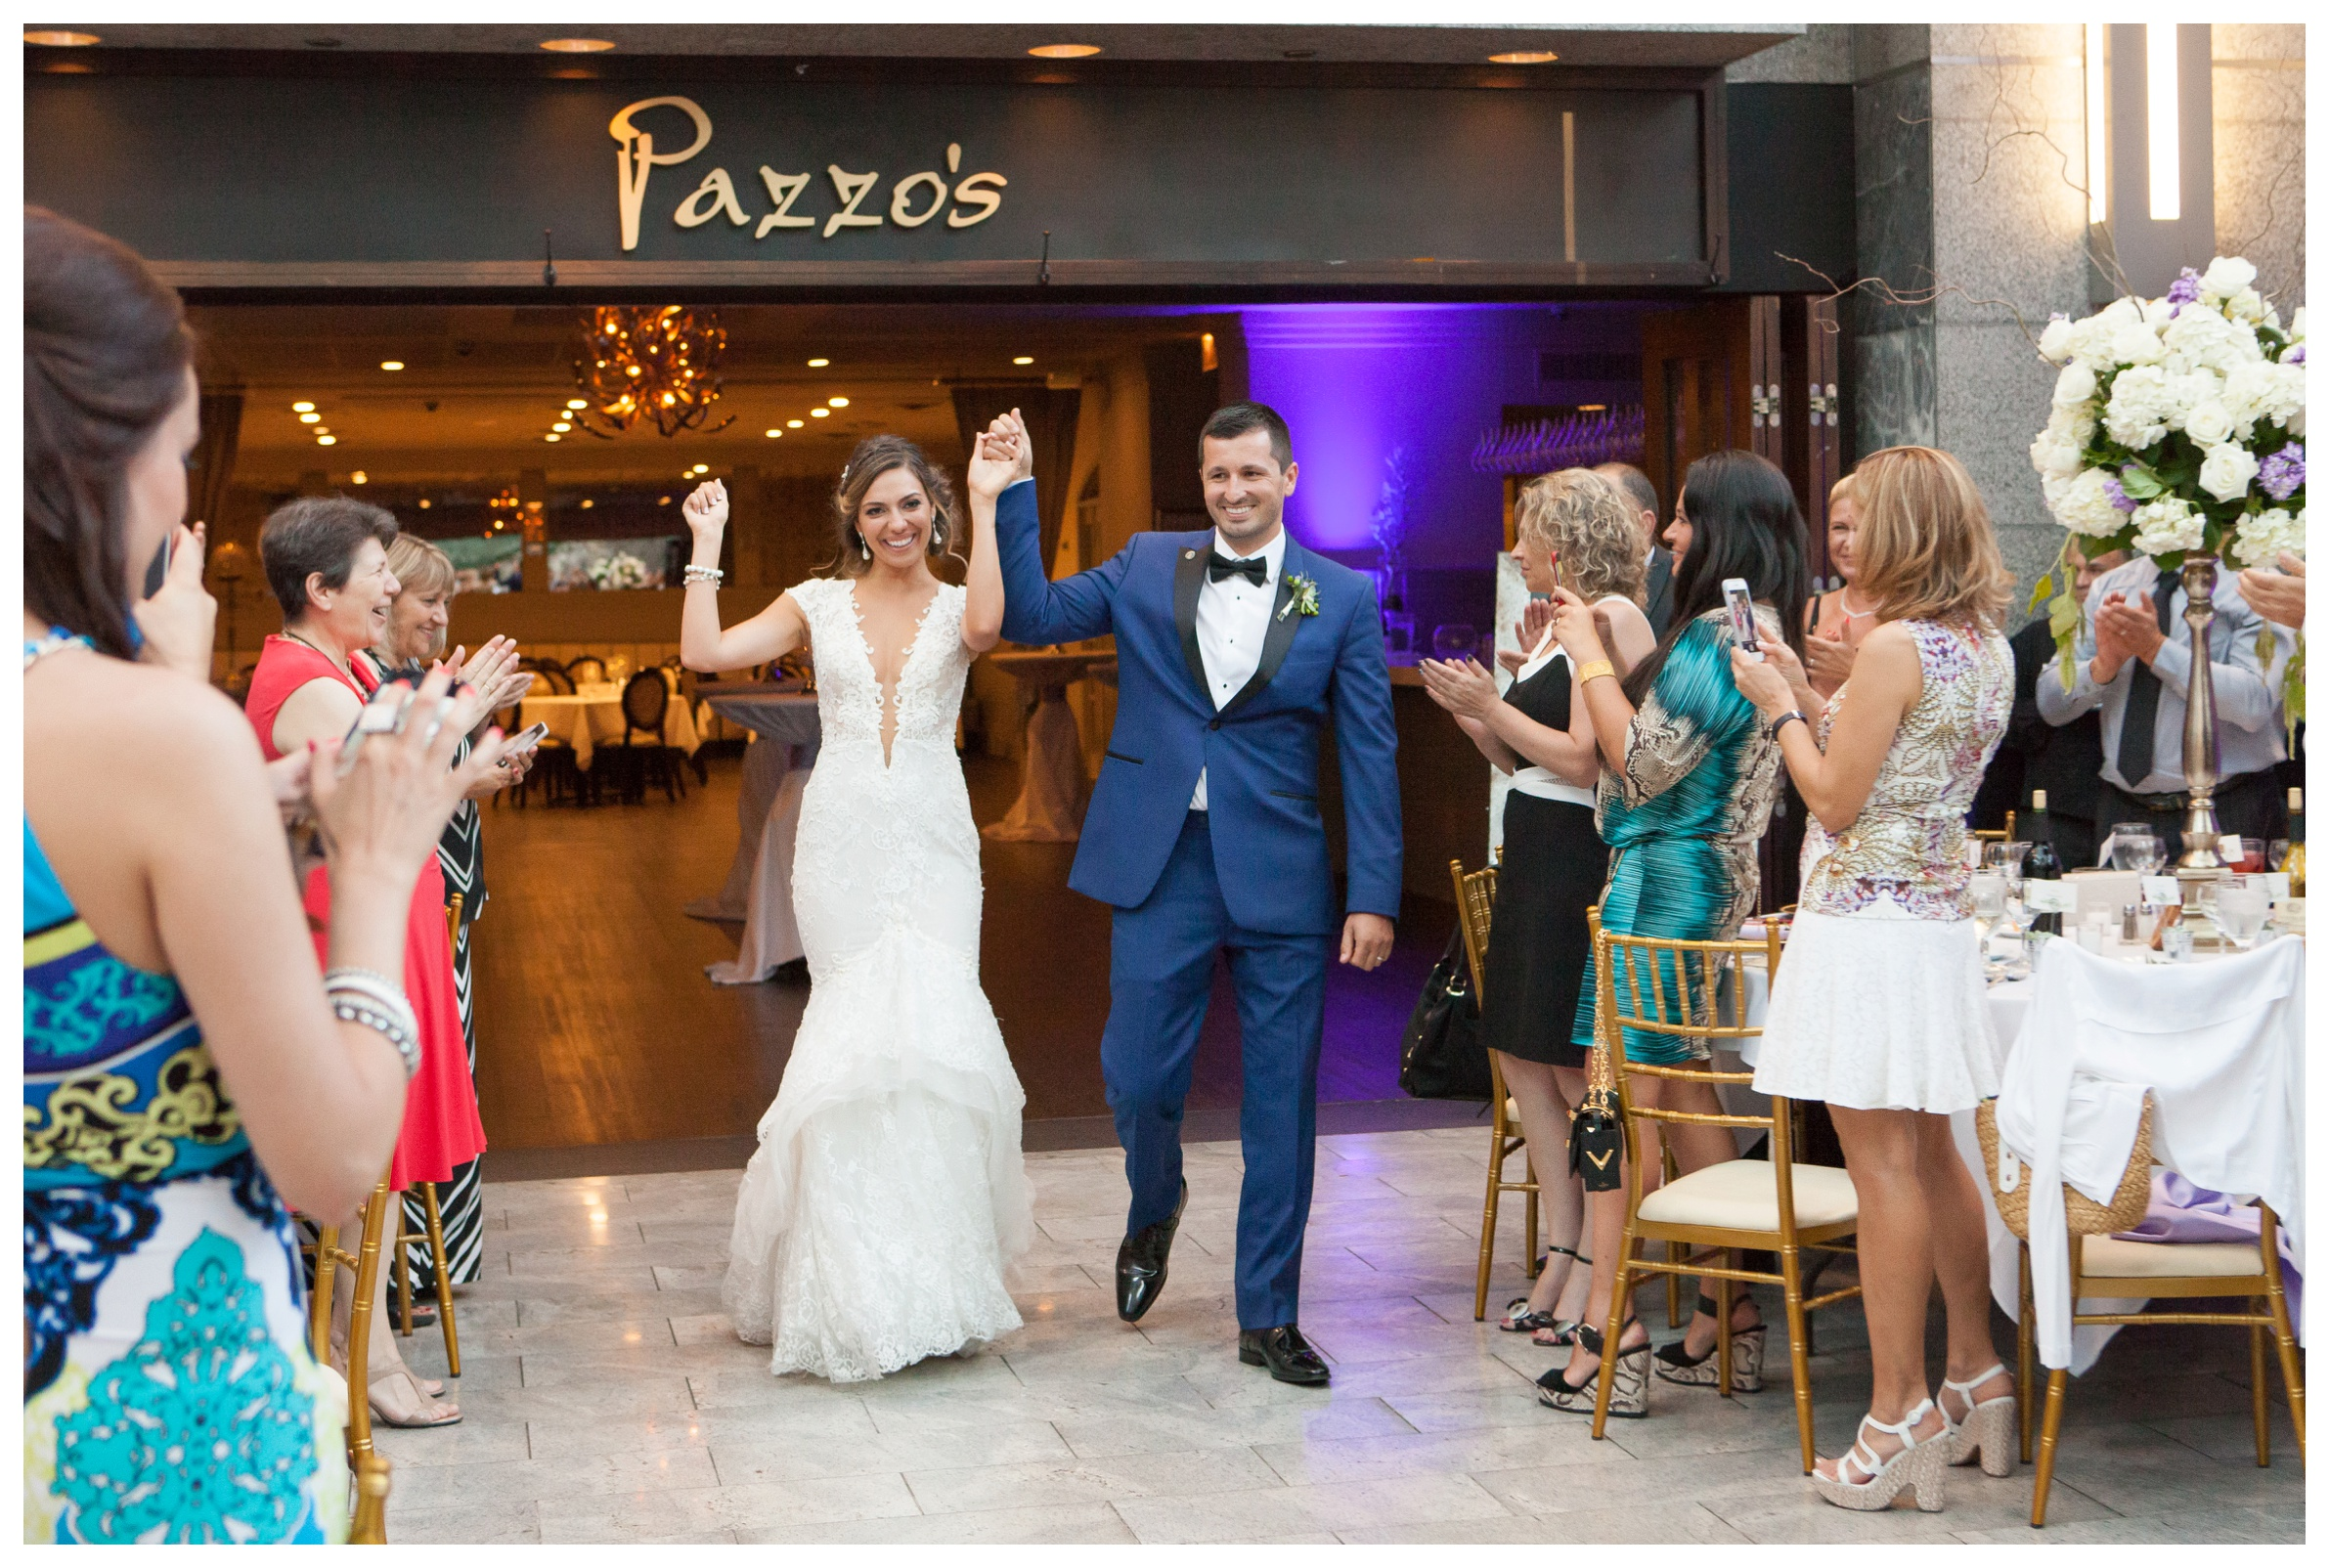 pazzos-wedding-photos_0025.jpg